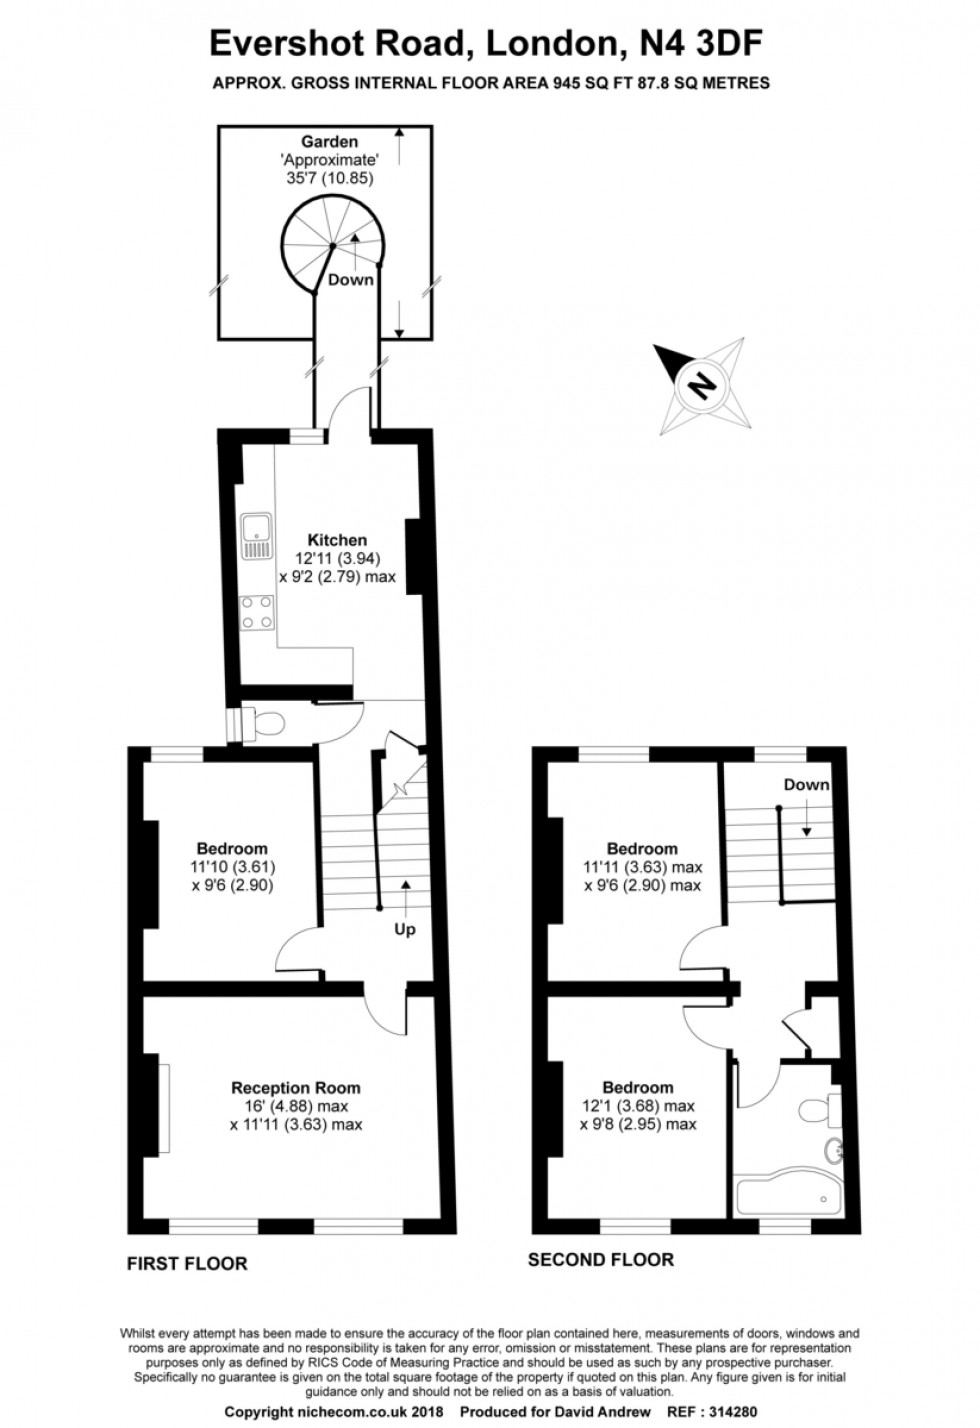 Floorplan for Evershot Road N4 3DF